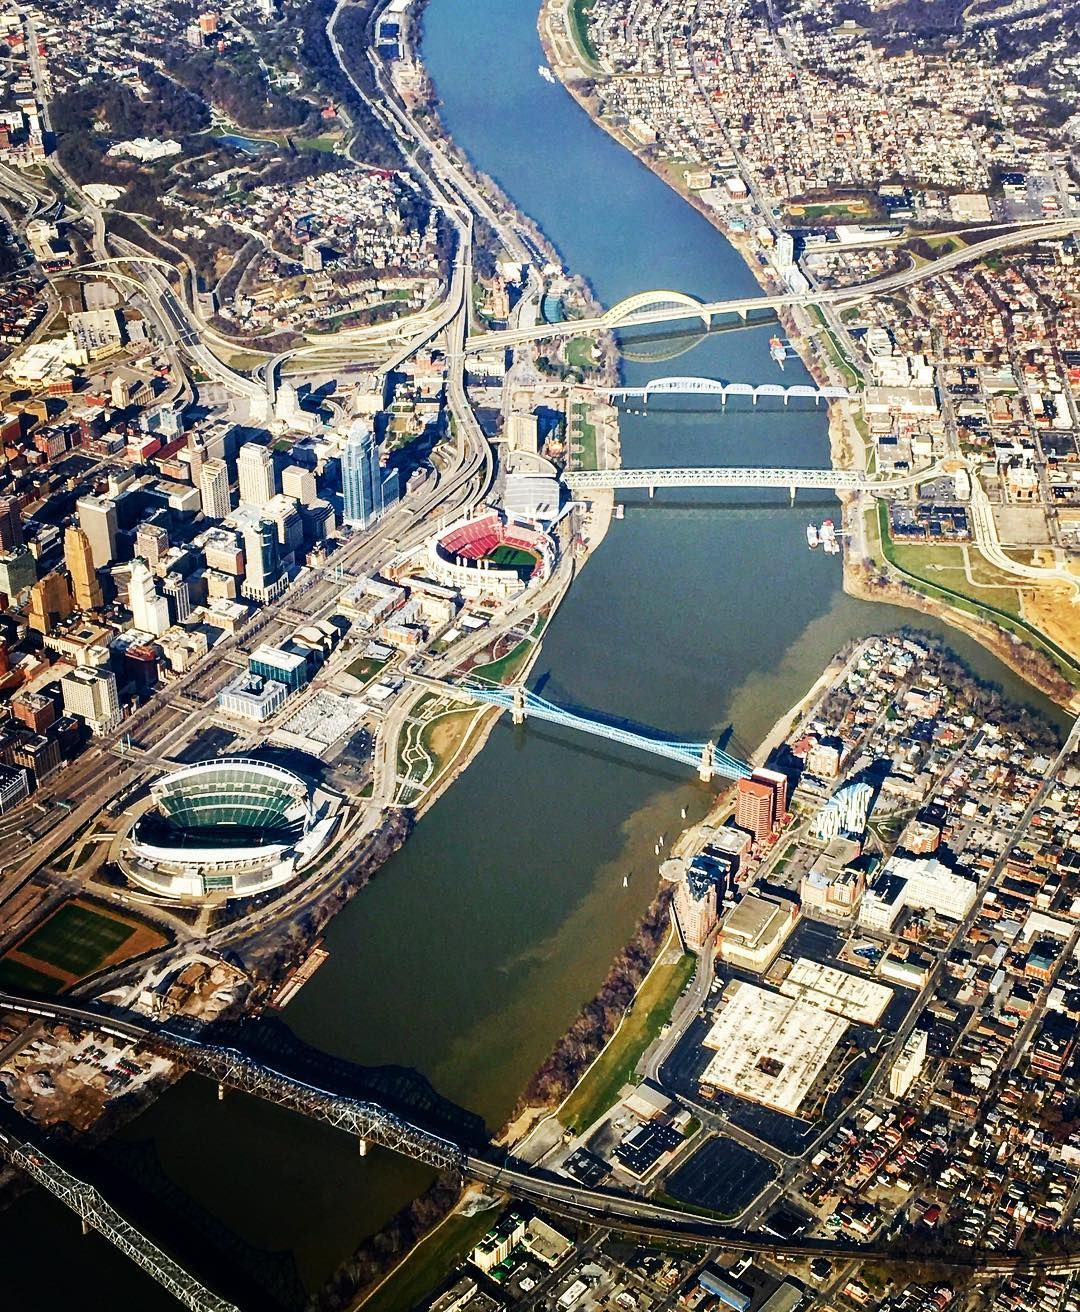 Places To Visit In Northern Ky: Breathtaking View Of Downtown Cincinnati, The Ohio River